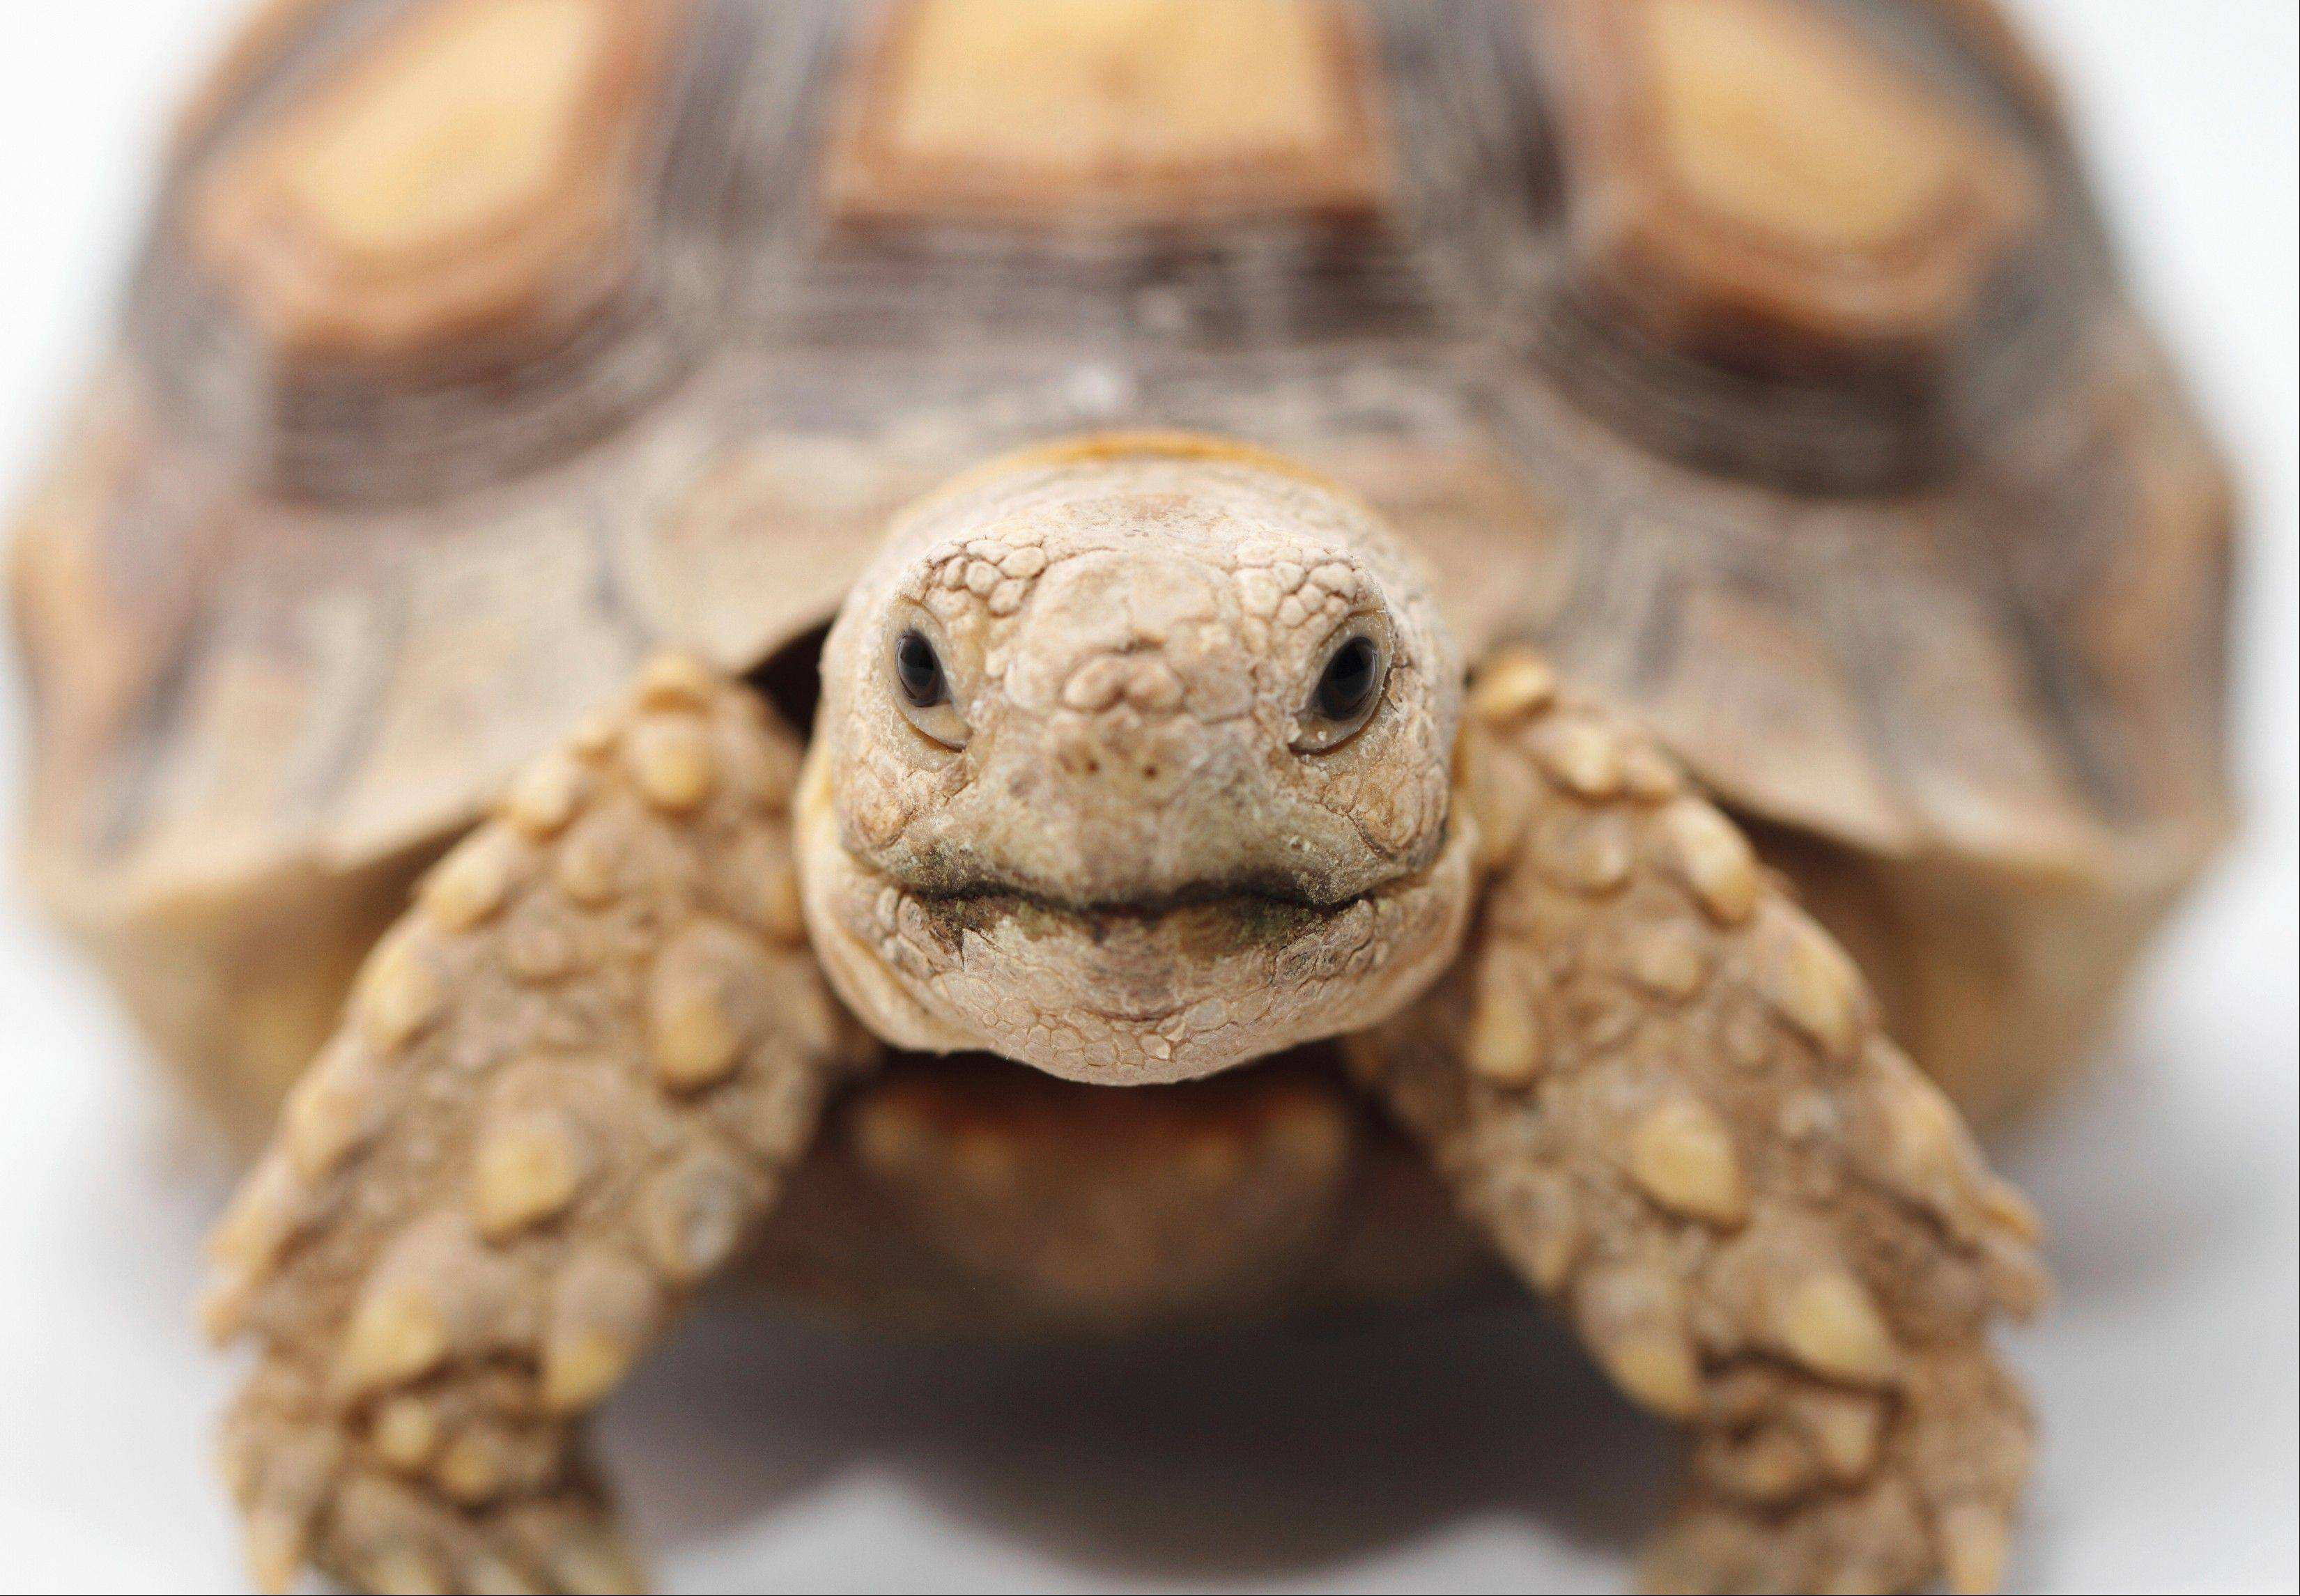 See a variety of reptiles, amphibians and exotic animals at Chicagoland Repticon at the Kane County Fairgrounds.